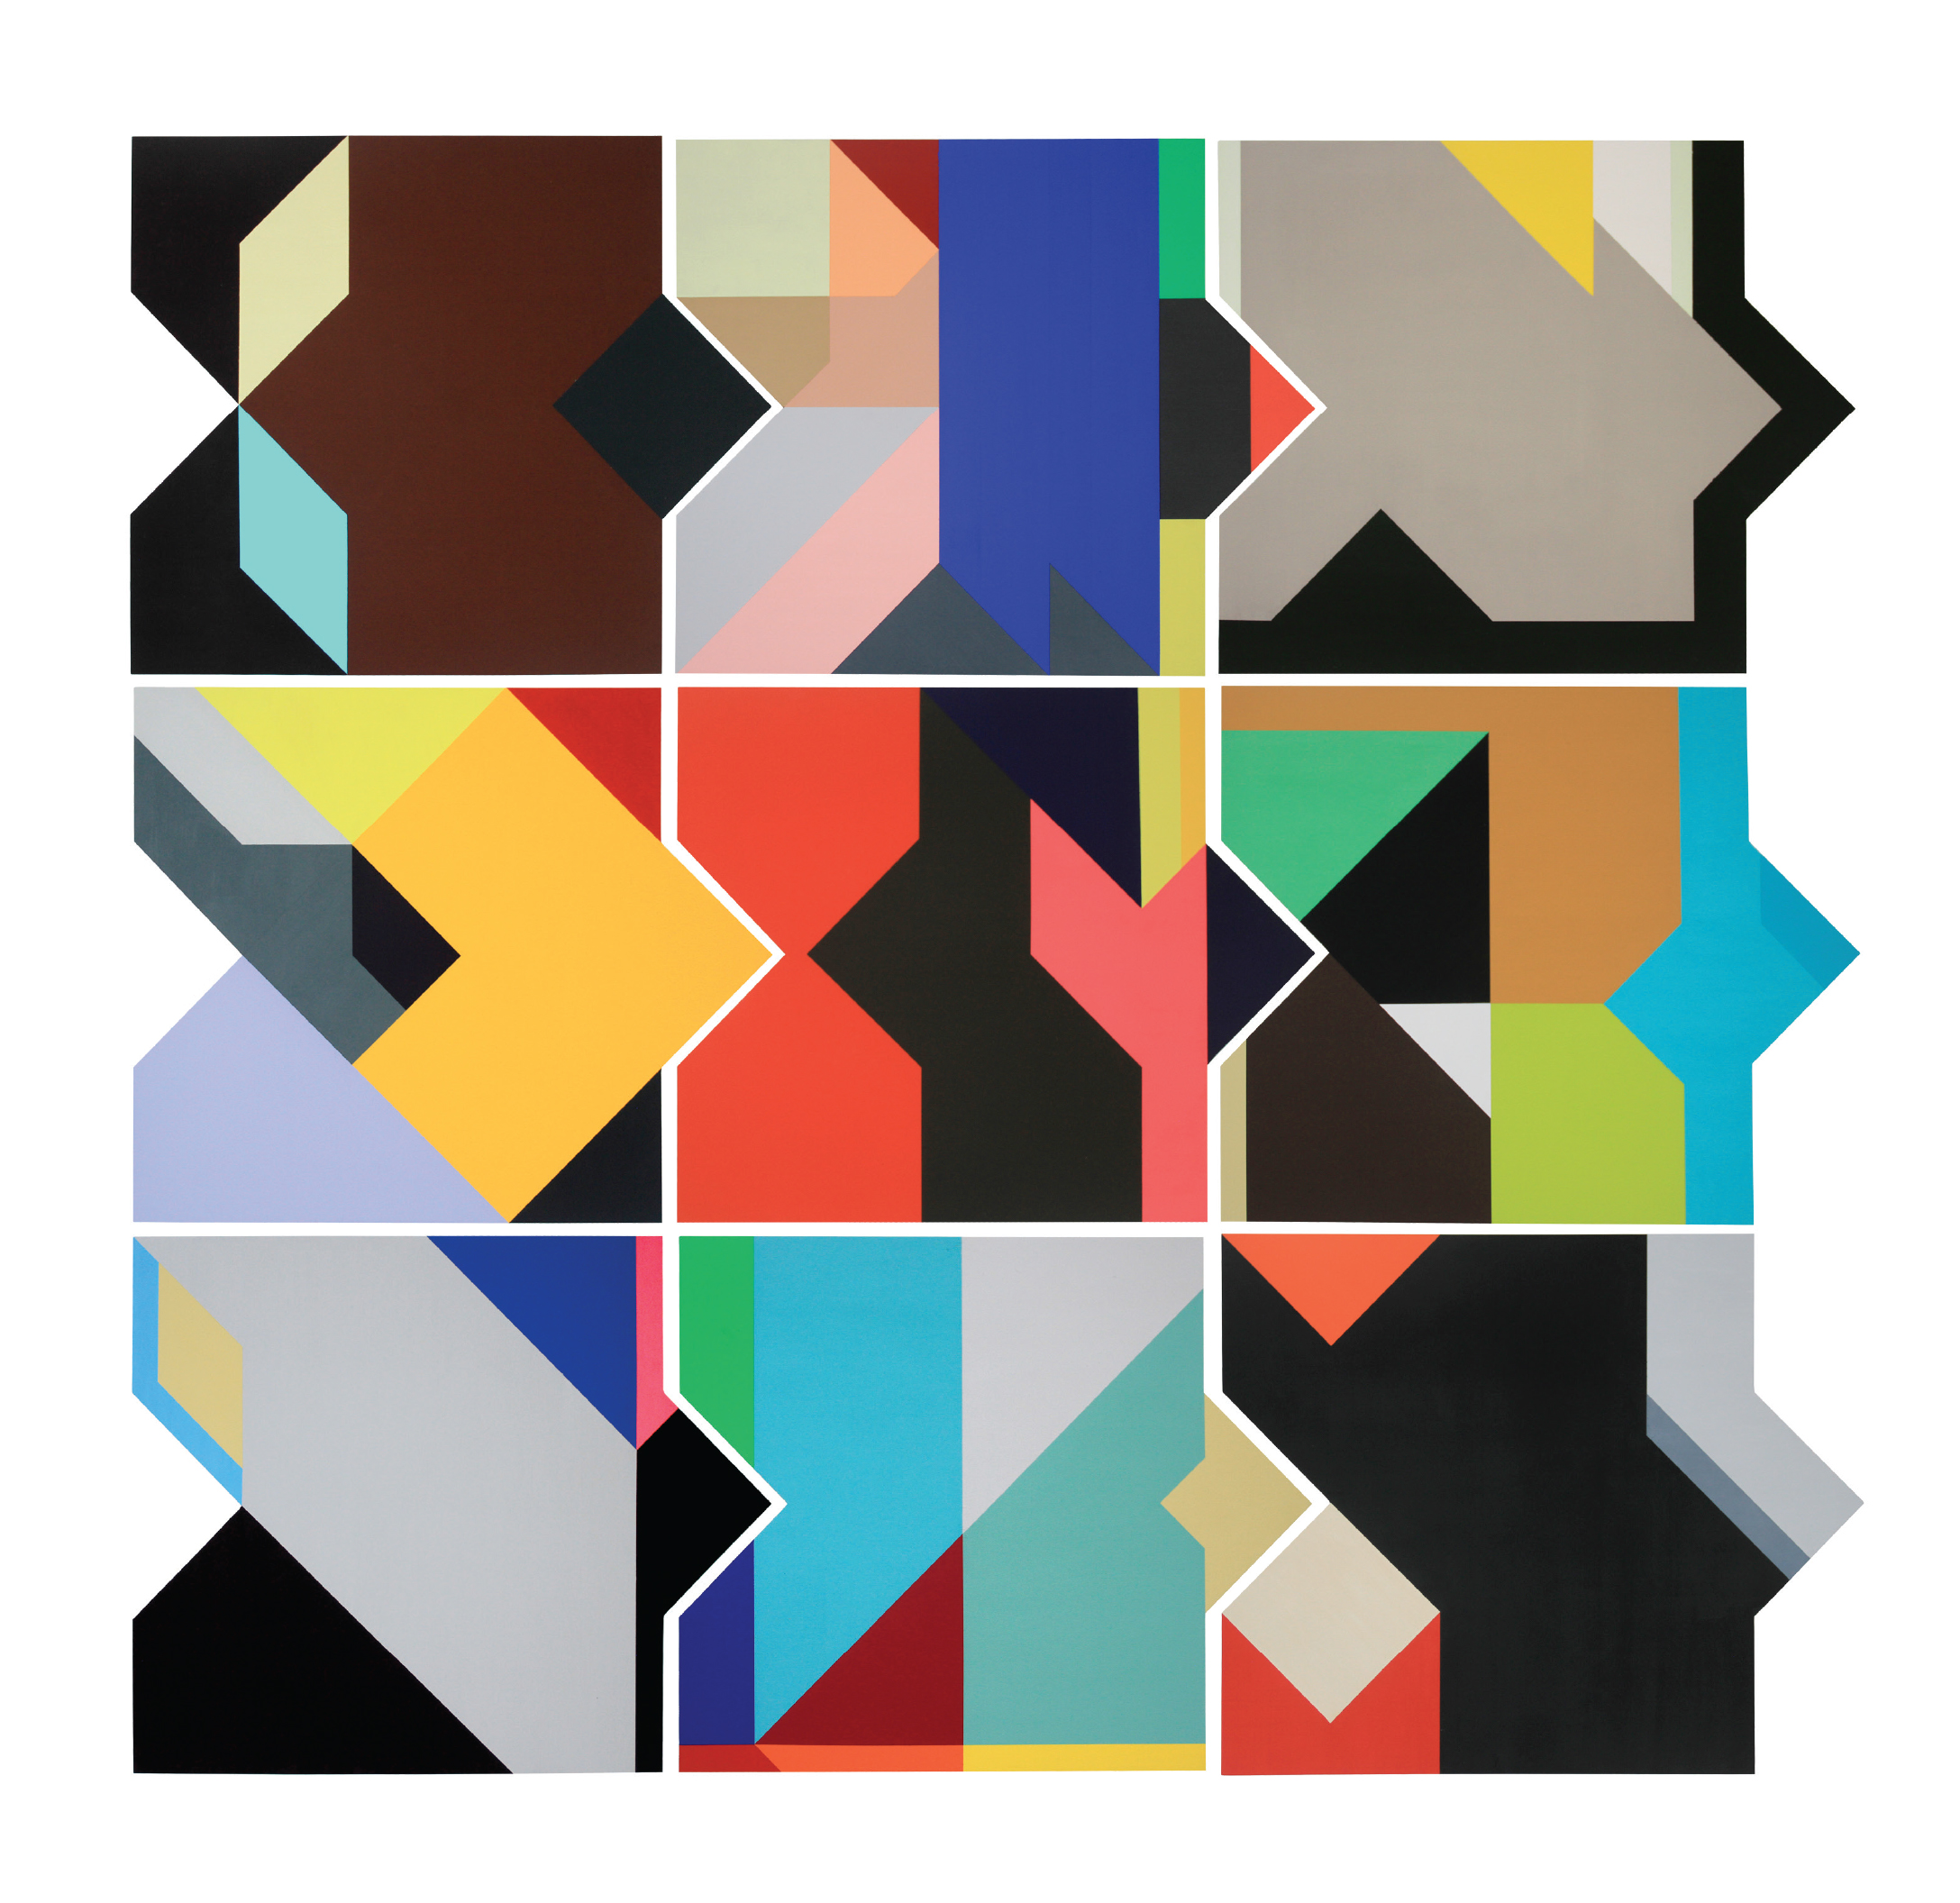 Give us a second - Series of 9 medium size paintings on interconnecting ply wood panels available at www.eyestorm.com read a feature for Eyestorm magazine about these pieces here - Introducing Colour Abstract PaintingsMedium: Acrylic Gouache on ply wood panelYear: 2018Size: 60cm (w) x 50cm (h)(All panels from any series can interlock in some way)Signed and stamped by the artist.